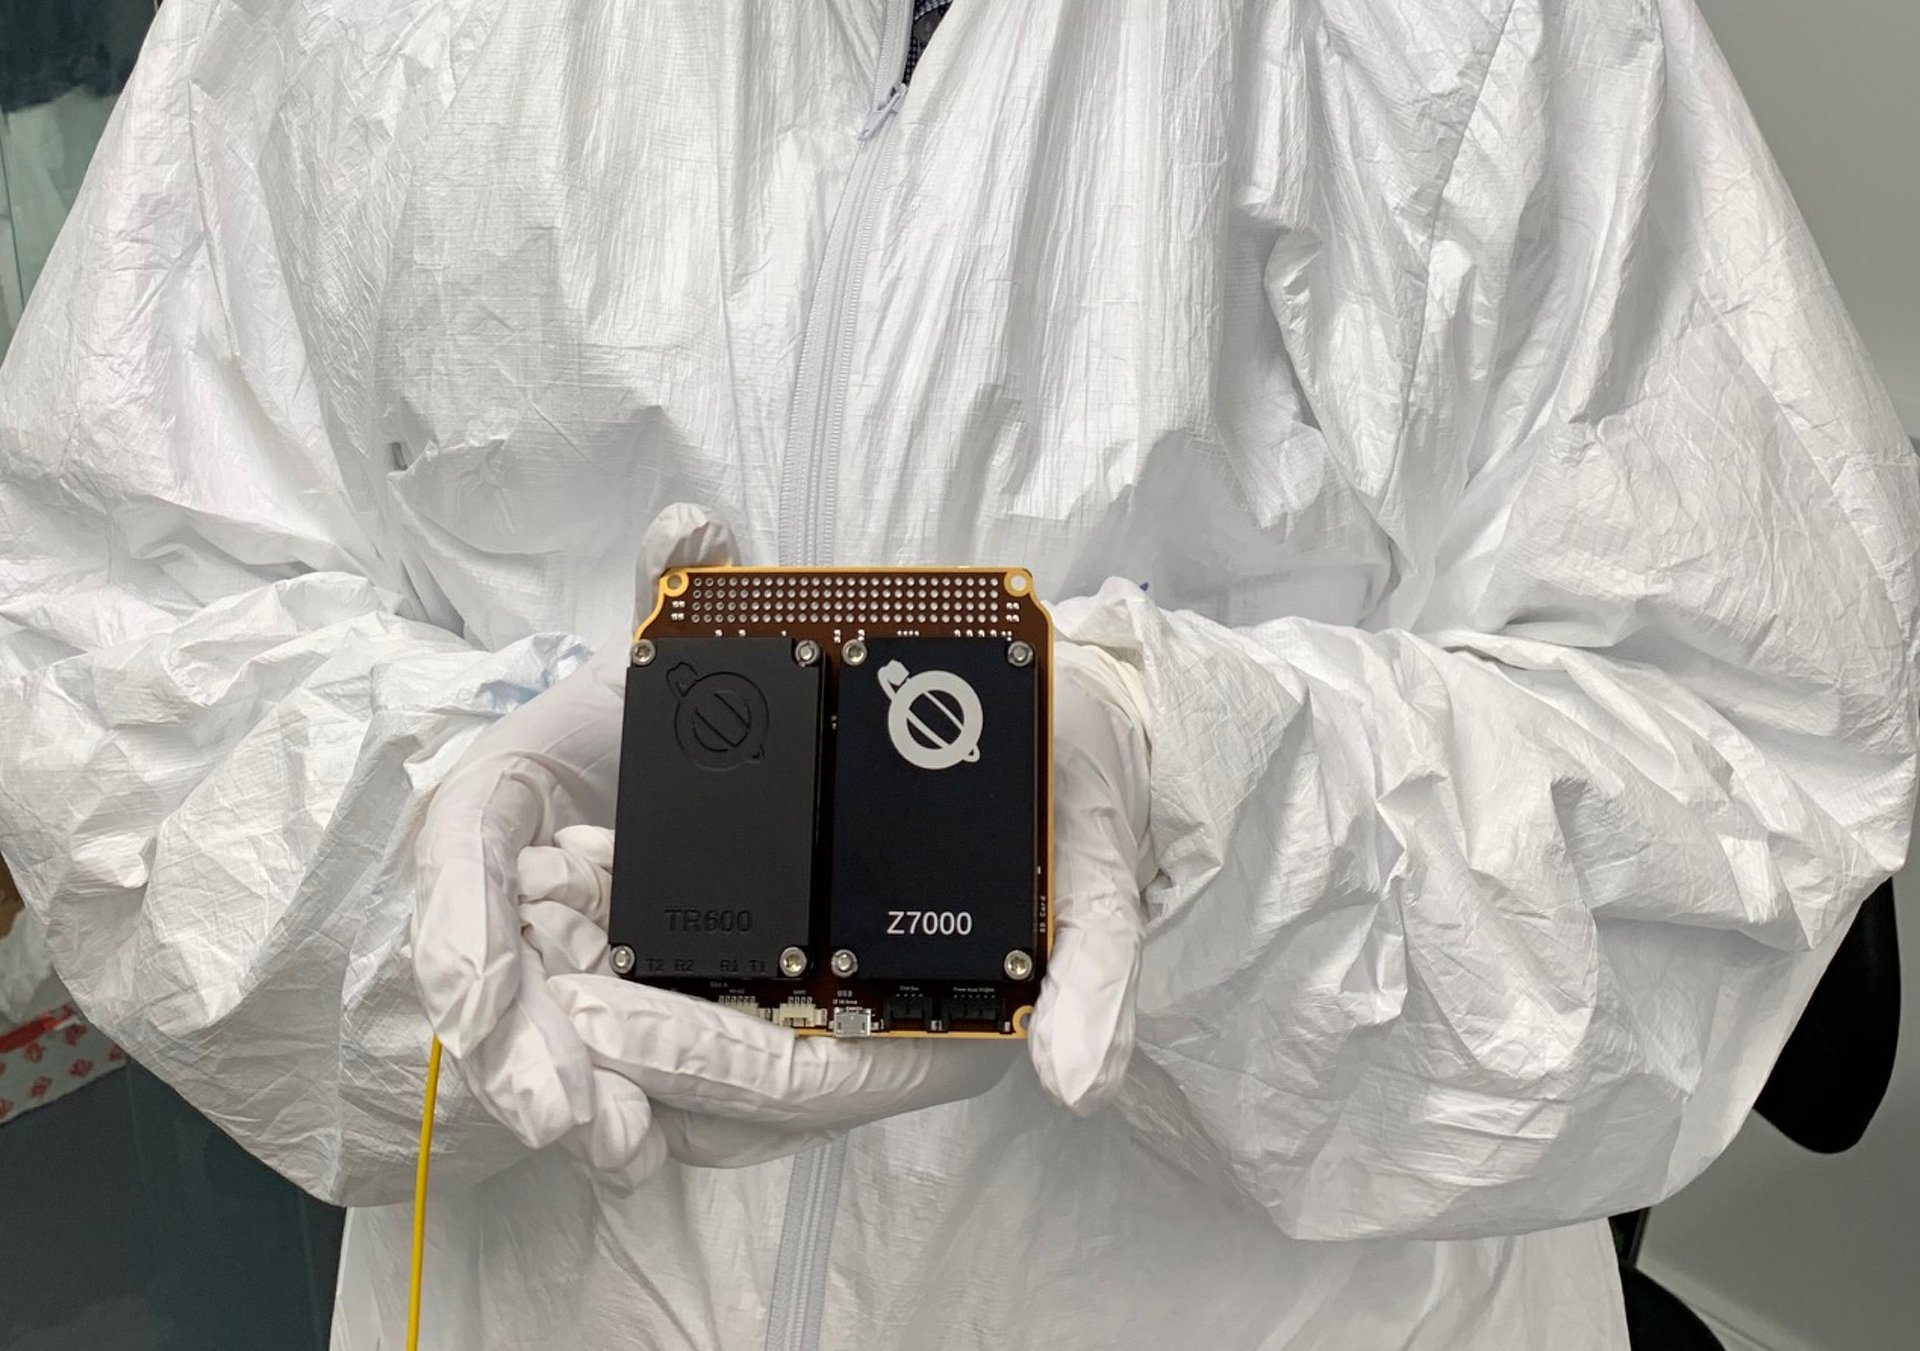 Airbus developed next generation retaskable software defined radio payload, Prometheus 1, will be launched on the Faraday-1 cubesat from New Zealand on 3 July. The Faraday-1 mission is part of In Space Missions Ltd's in-orbit demonstration programme.